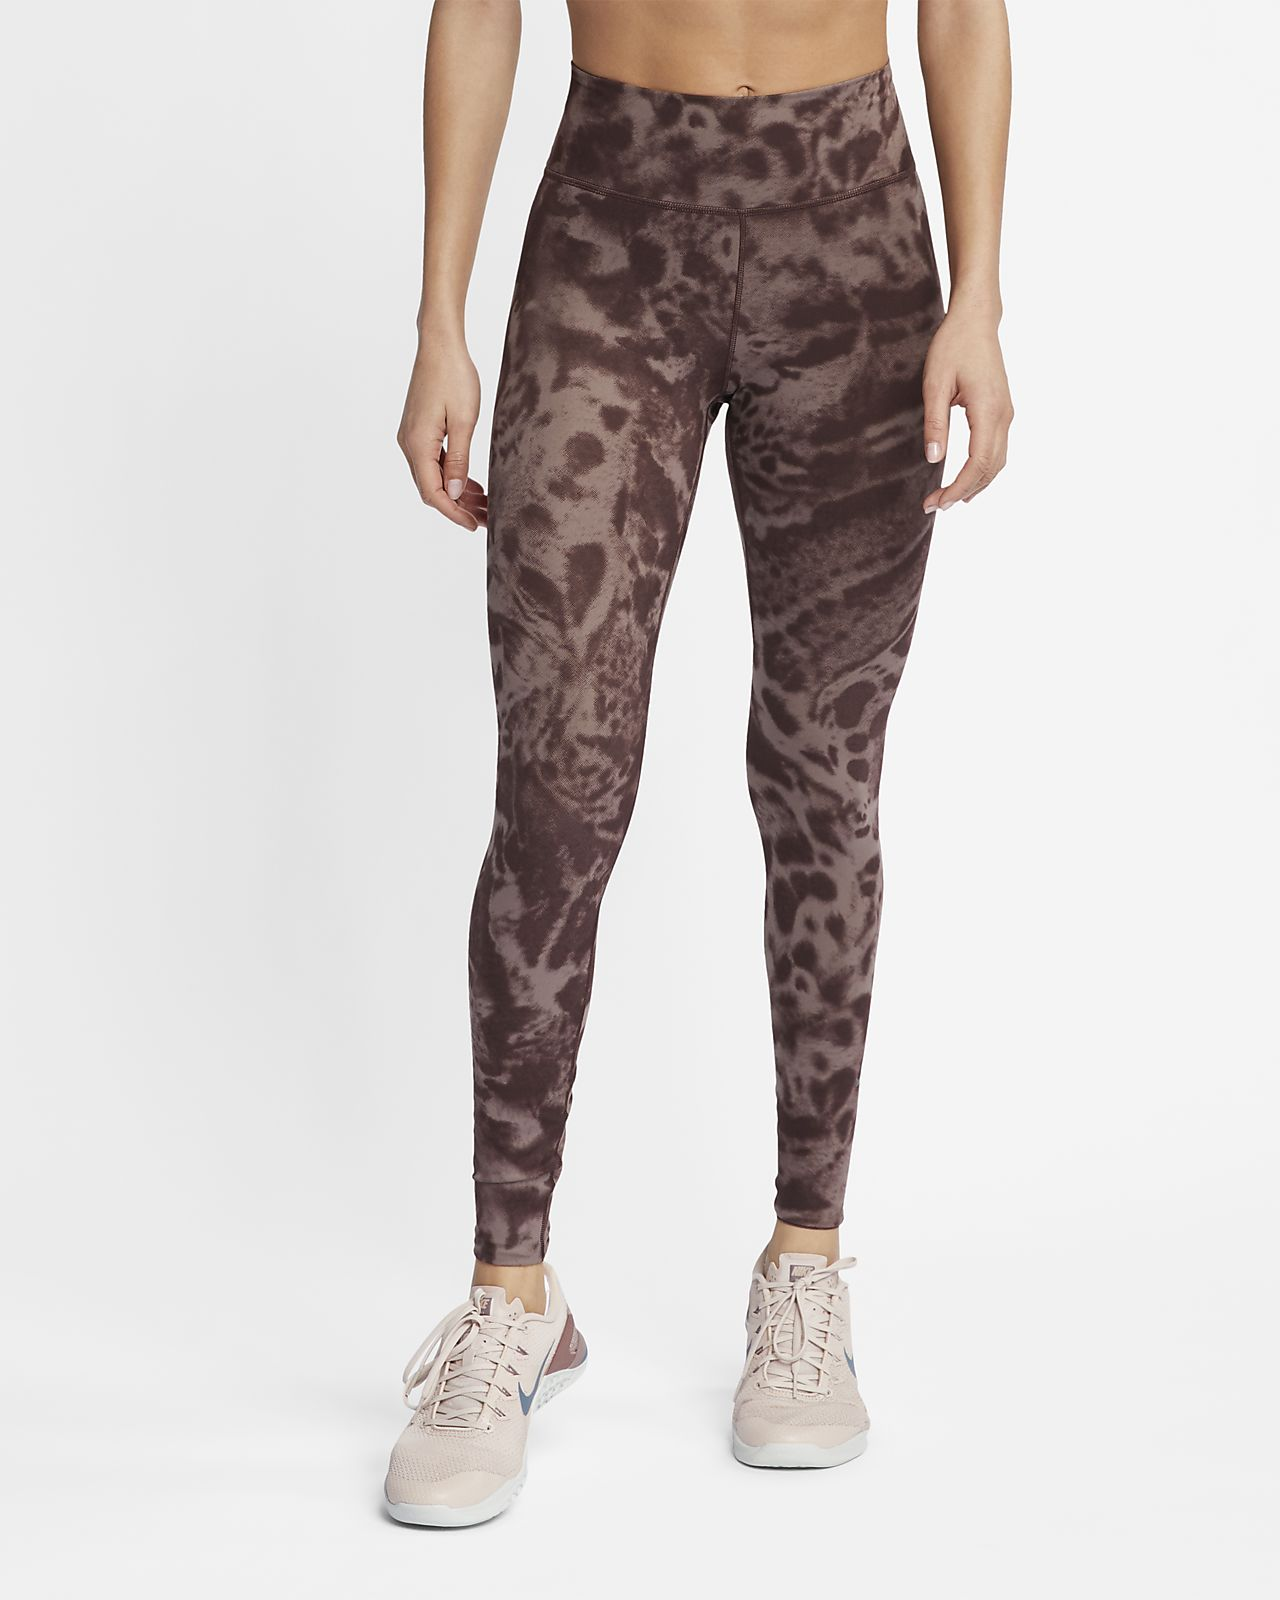 Nike One Luxe Women's Printed Tights